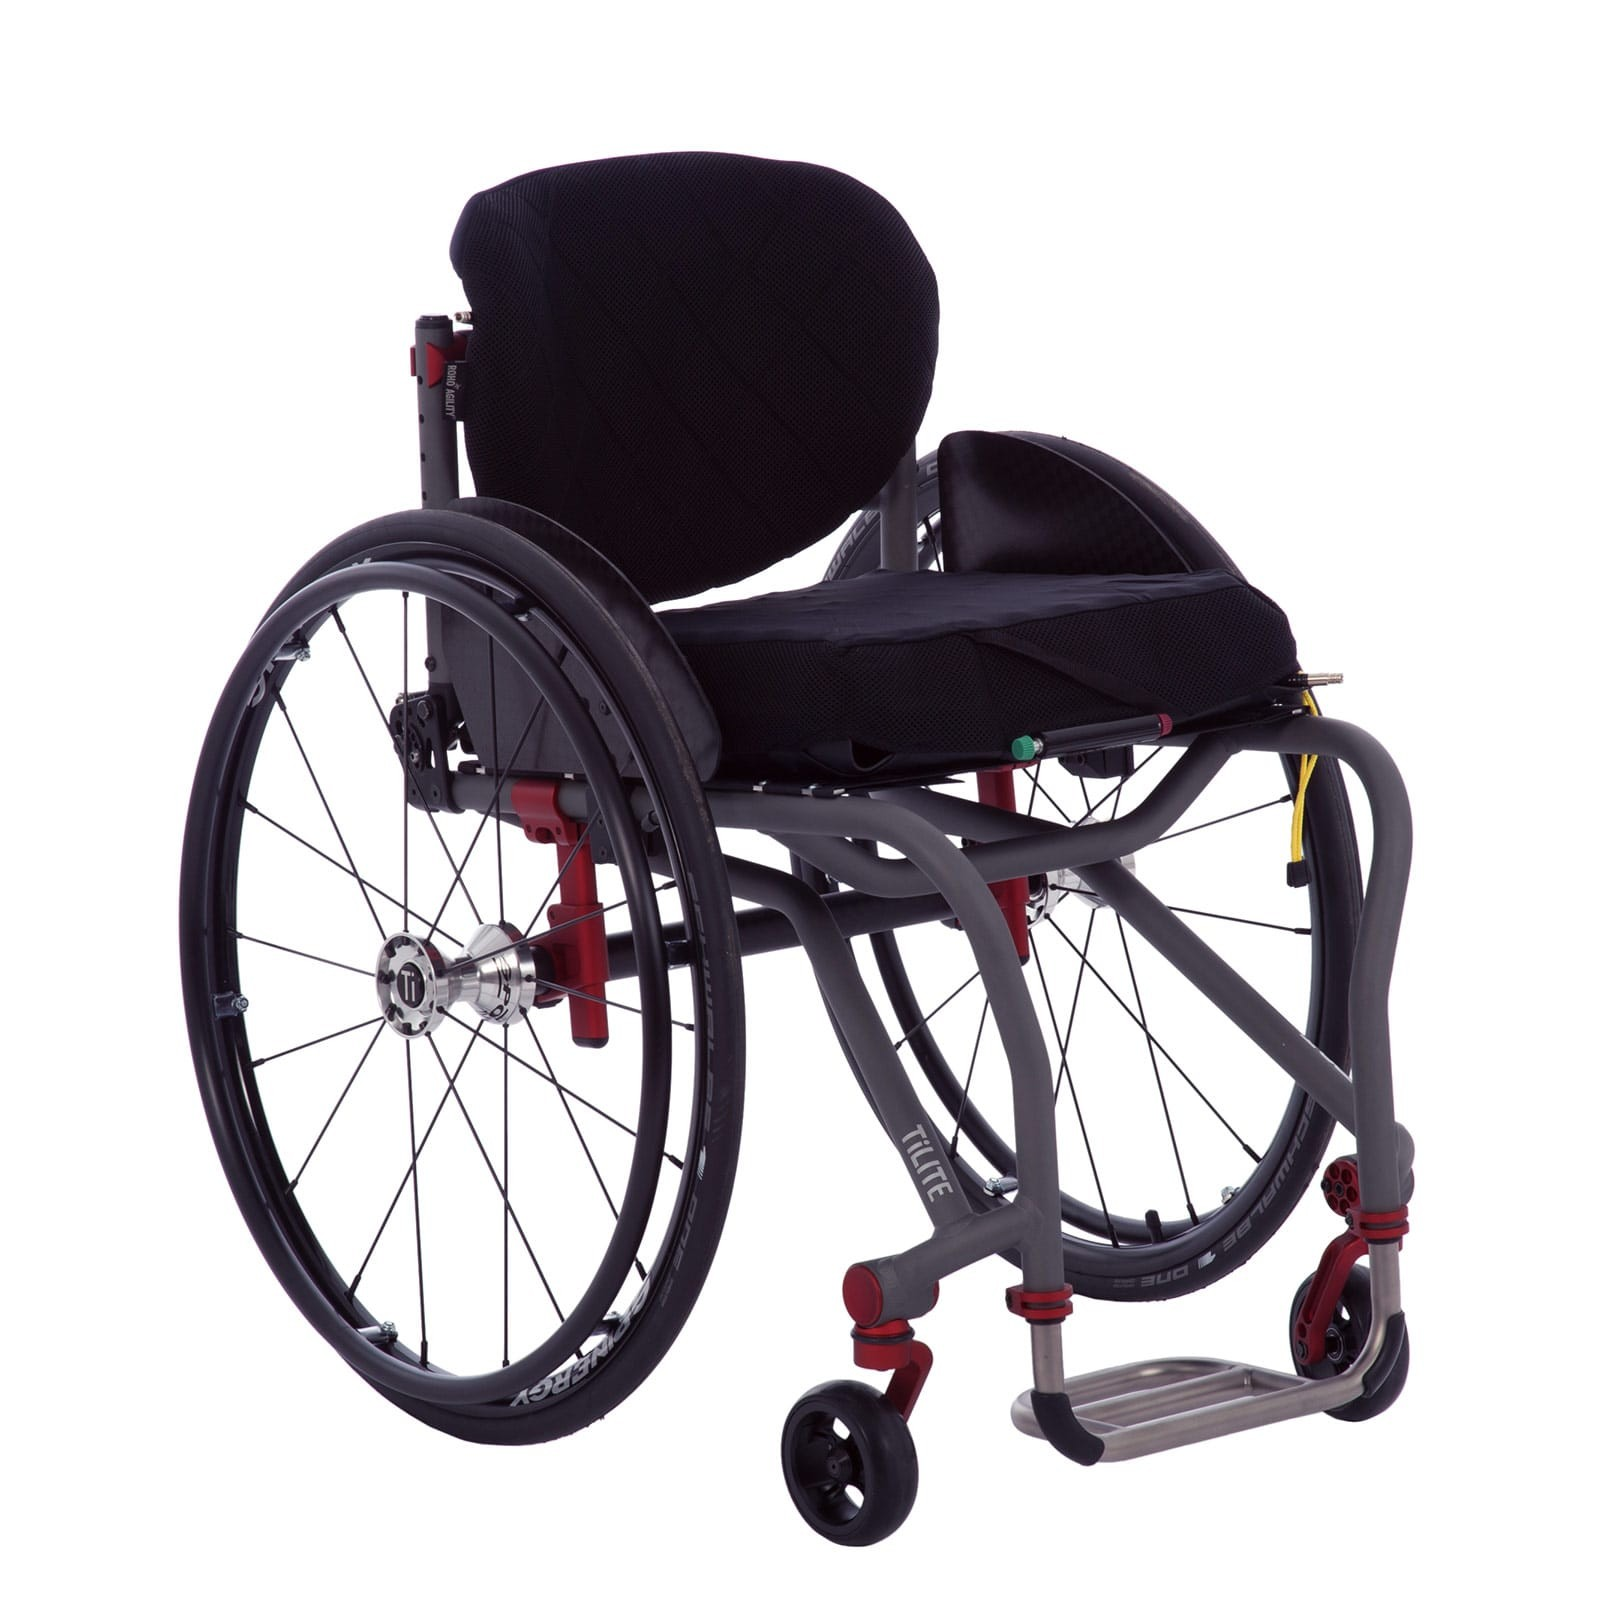 Wheel Chair Rentals Folding Rigid Ultra Light Wheelchair Rentals In Los Angeles